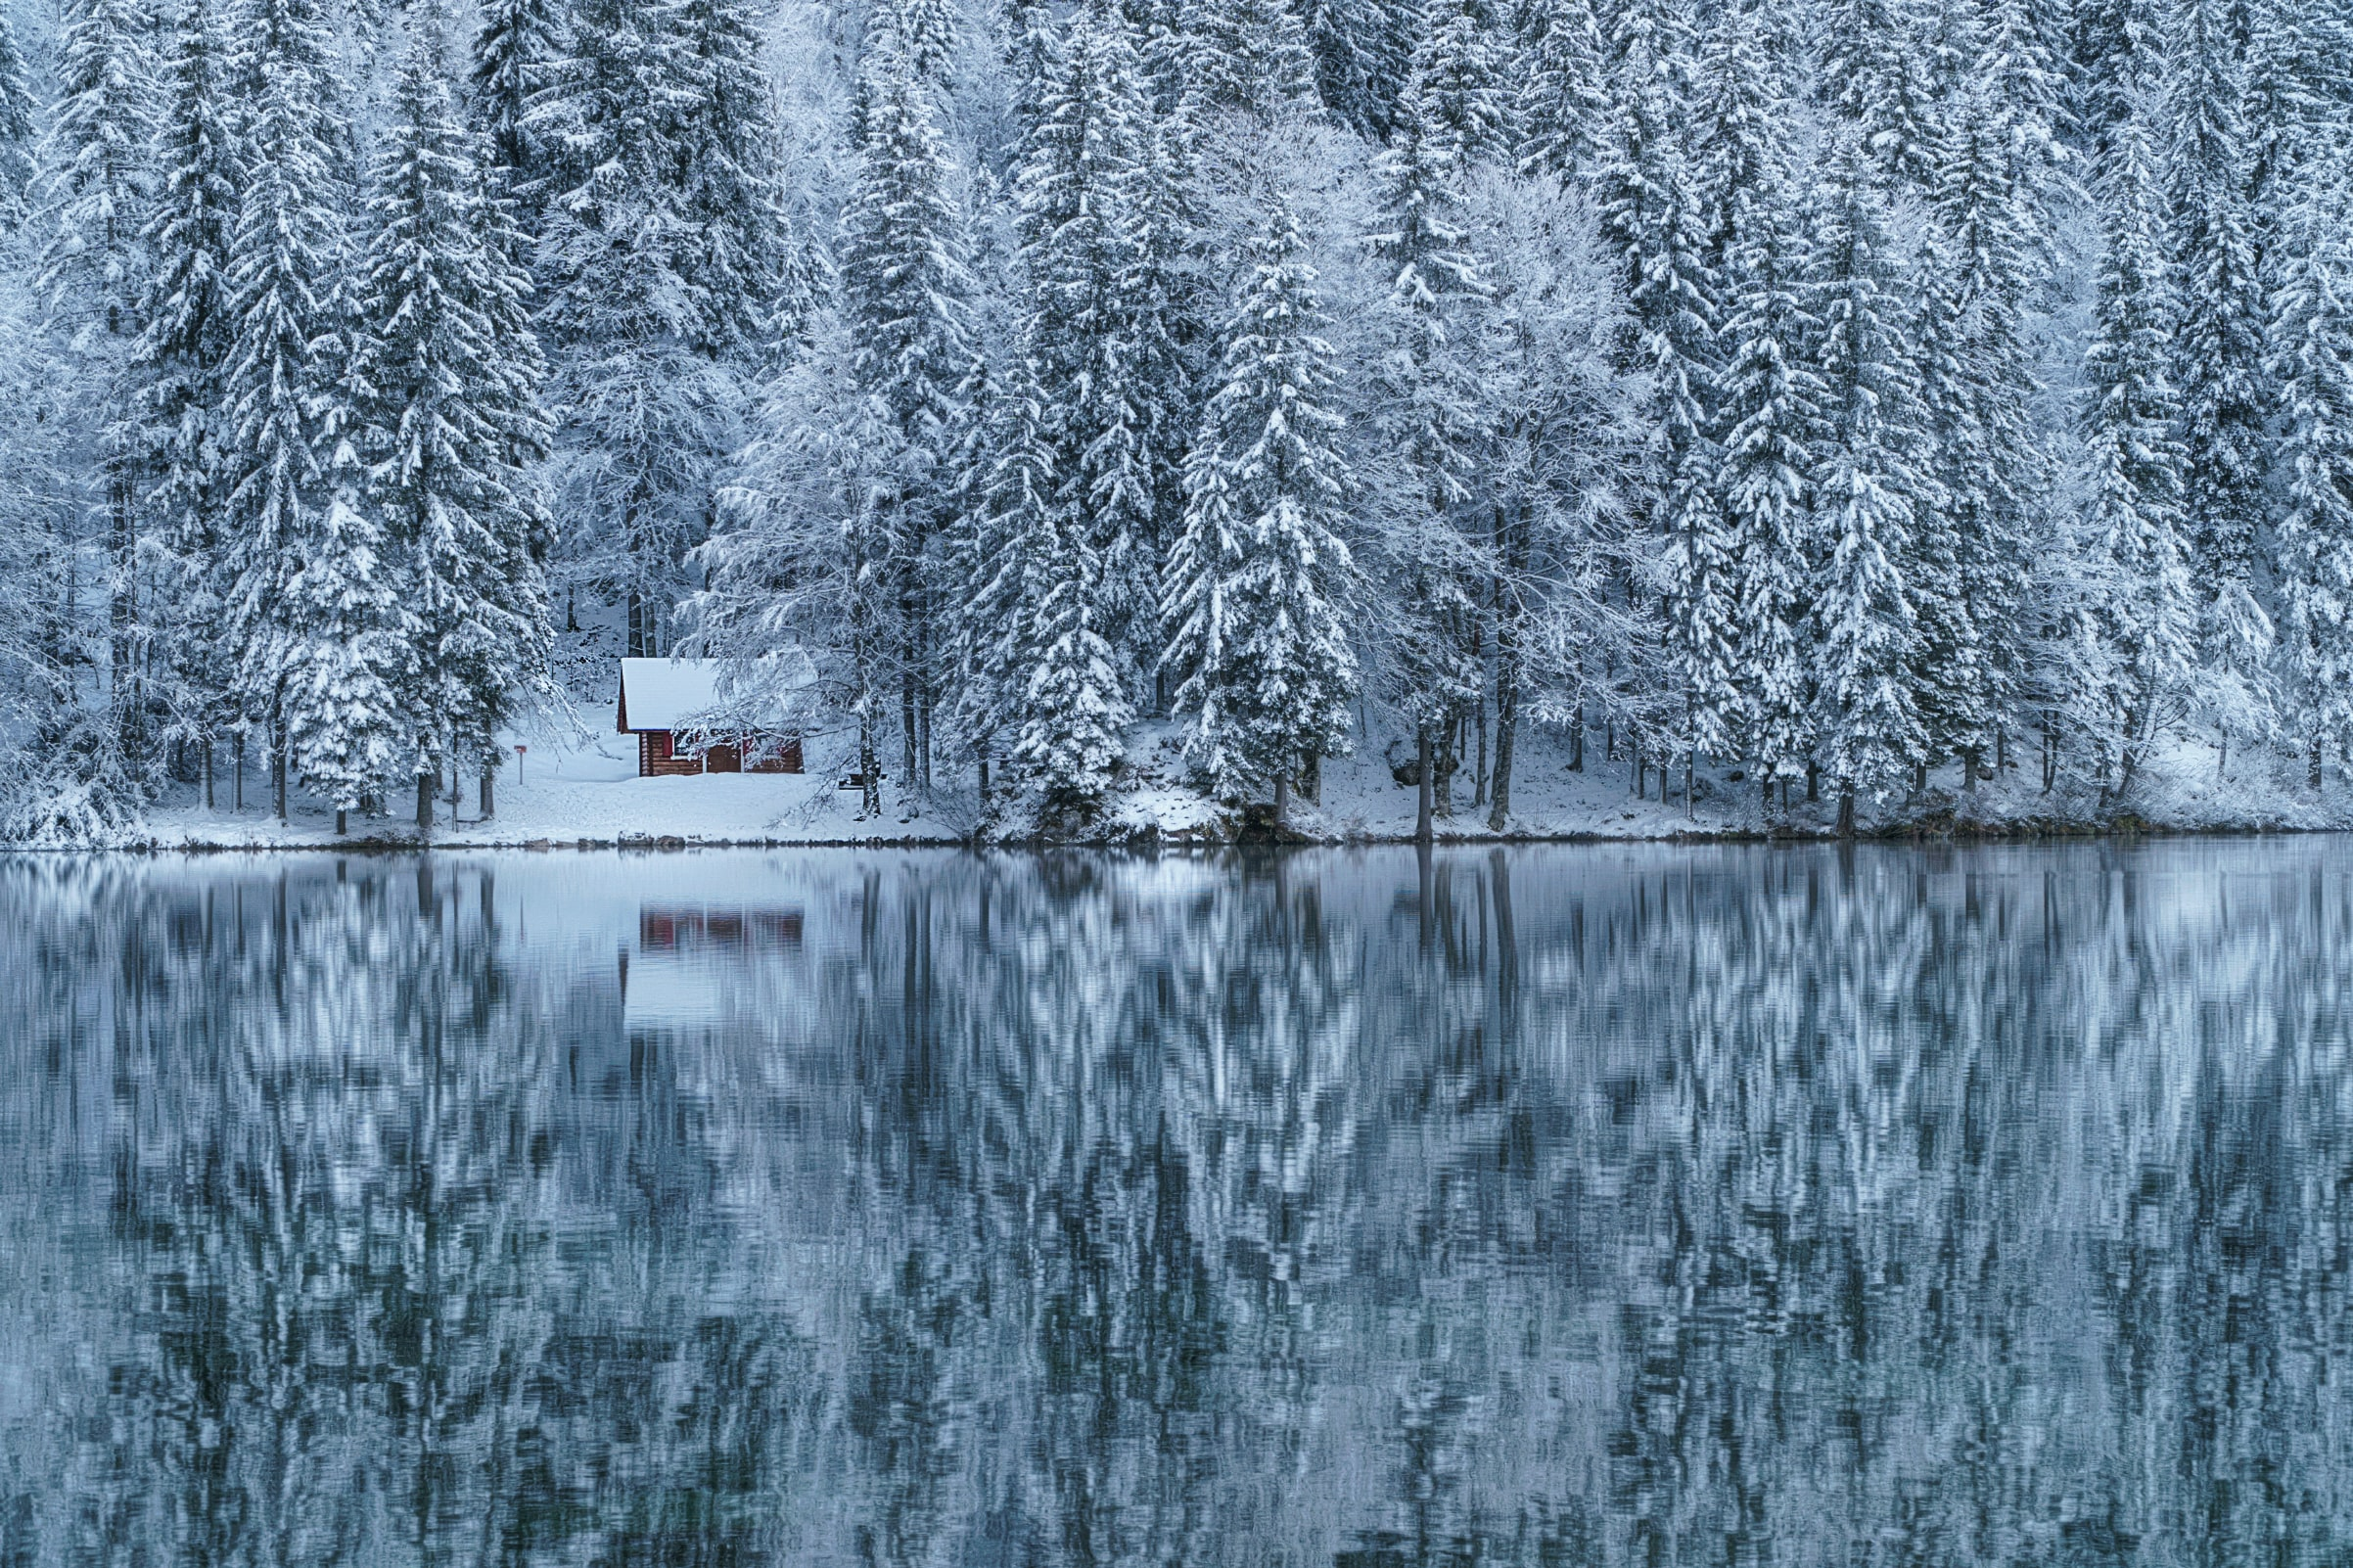 cabin near woods and lake with snow